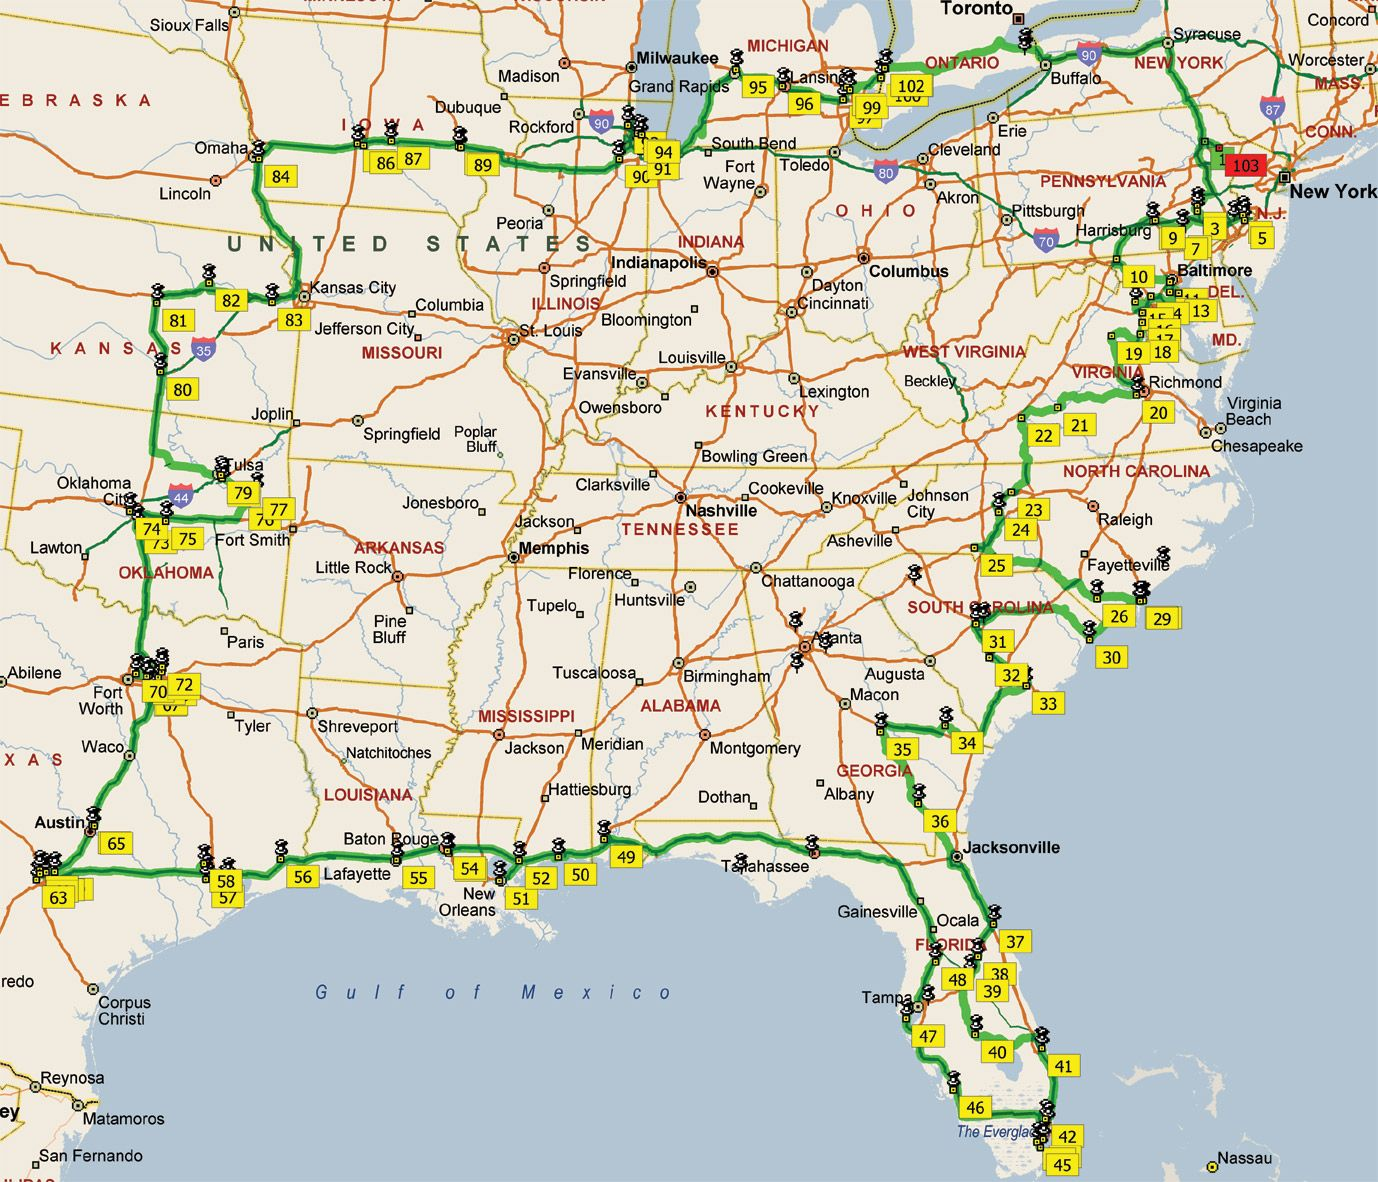 Eastern United States Map My Blog - Complete us map